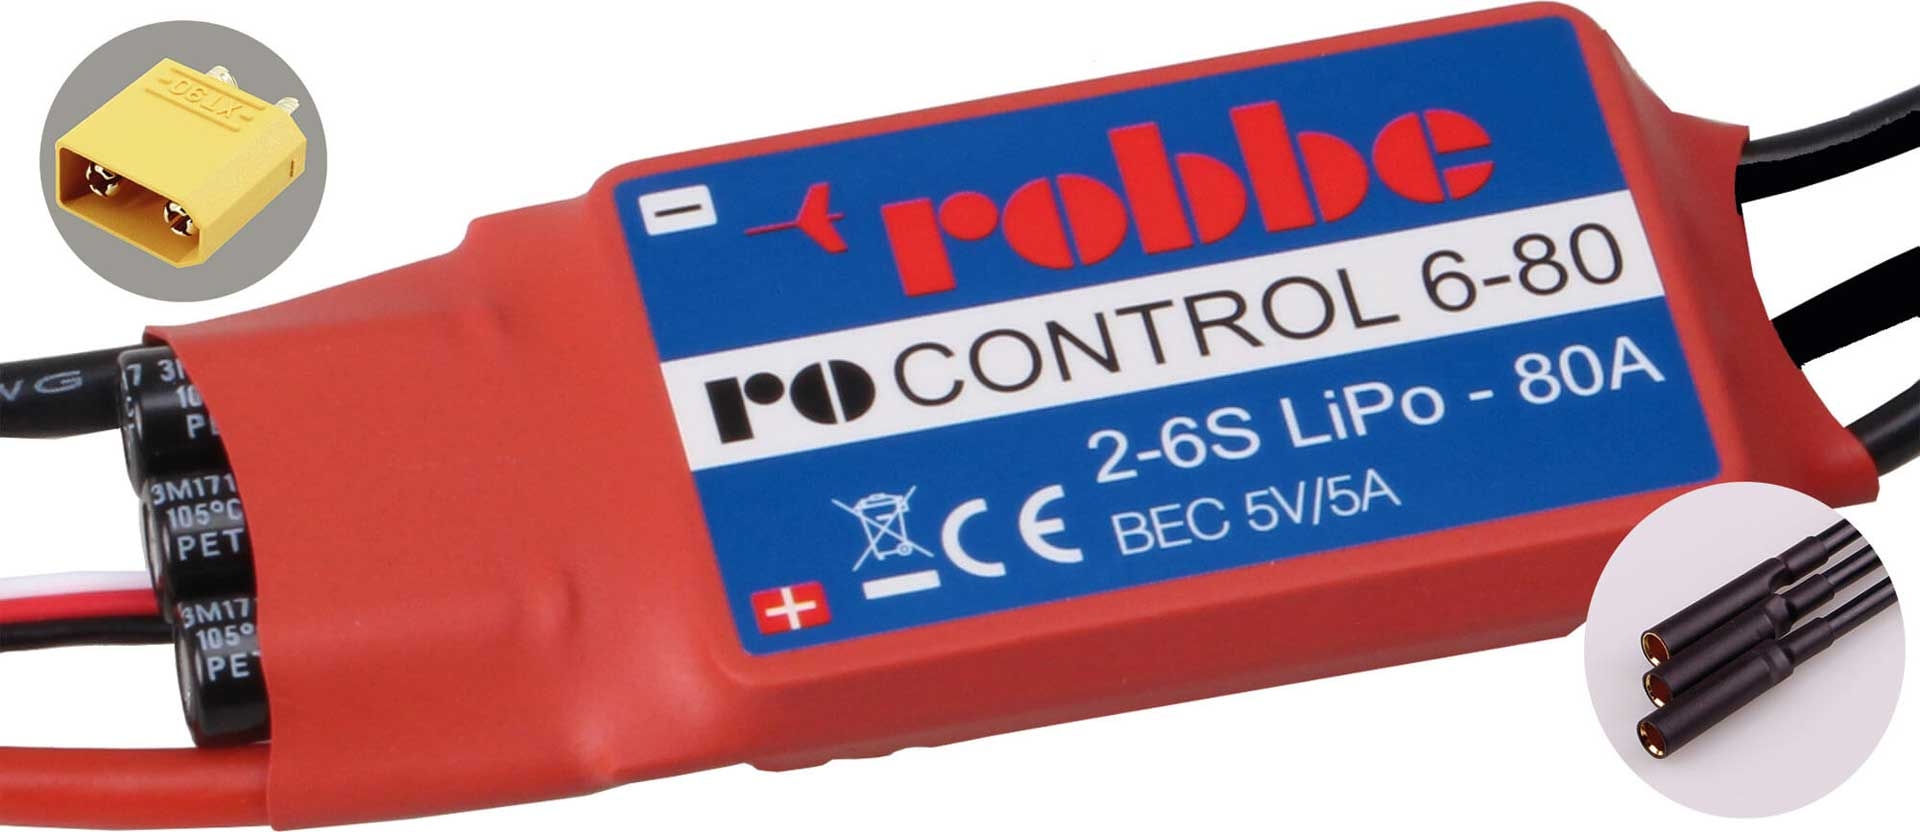 ROBBE RO-CONTROL 6-80 2-6S -80(100A) BL CONTROLLER 5V/5A SWITCH-BEC